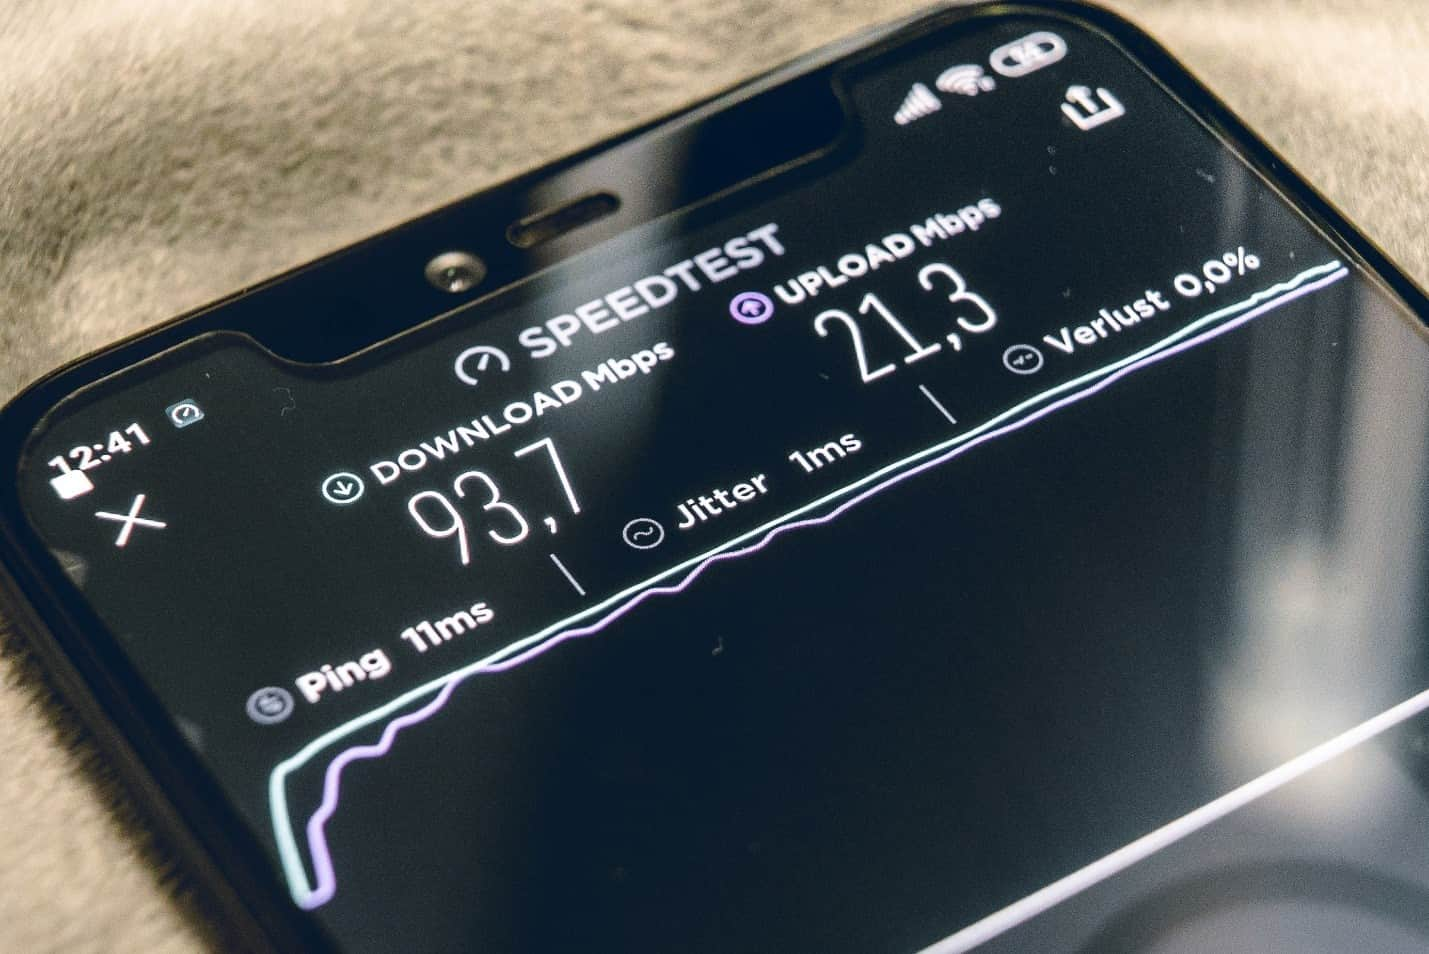 5g dangers and facts